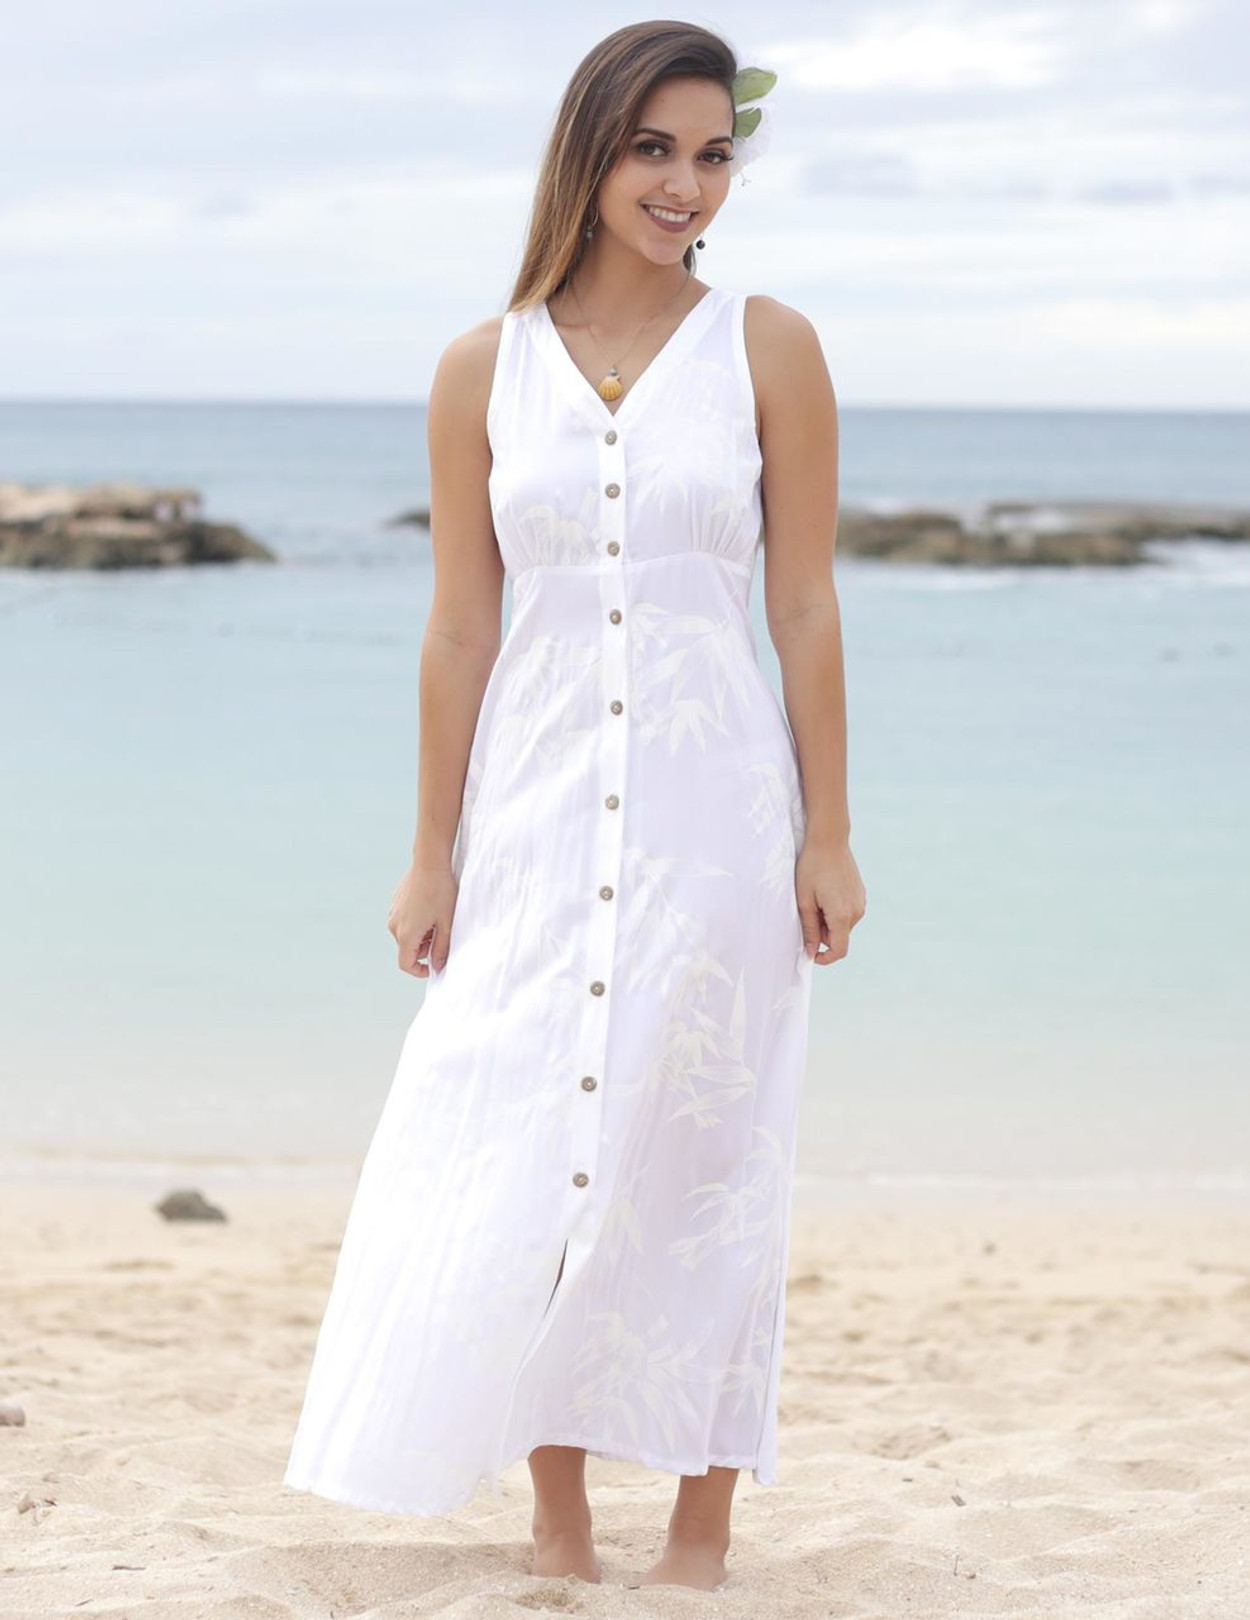 Maxi White Wedding Dress Bamboo Design 100 Rayon Fabric Soft And Classy Authentic Wooden: White Hawaiian Wedding Dresses At Reisefeber.org